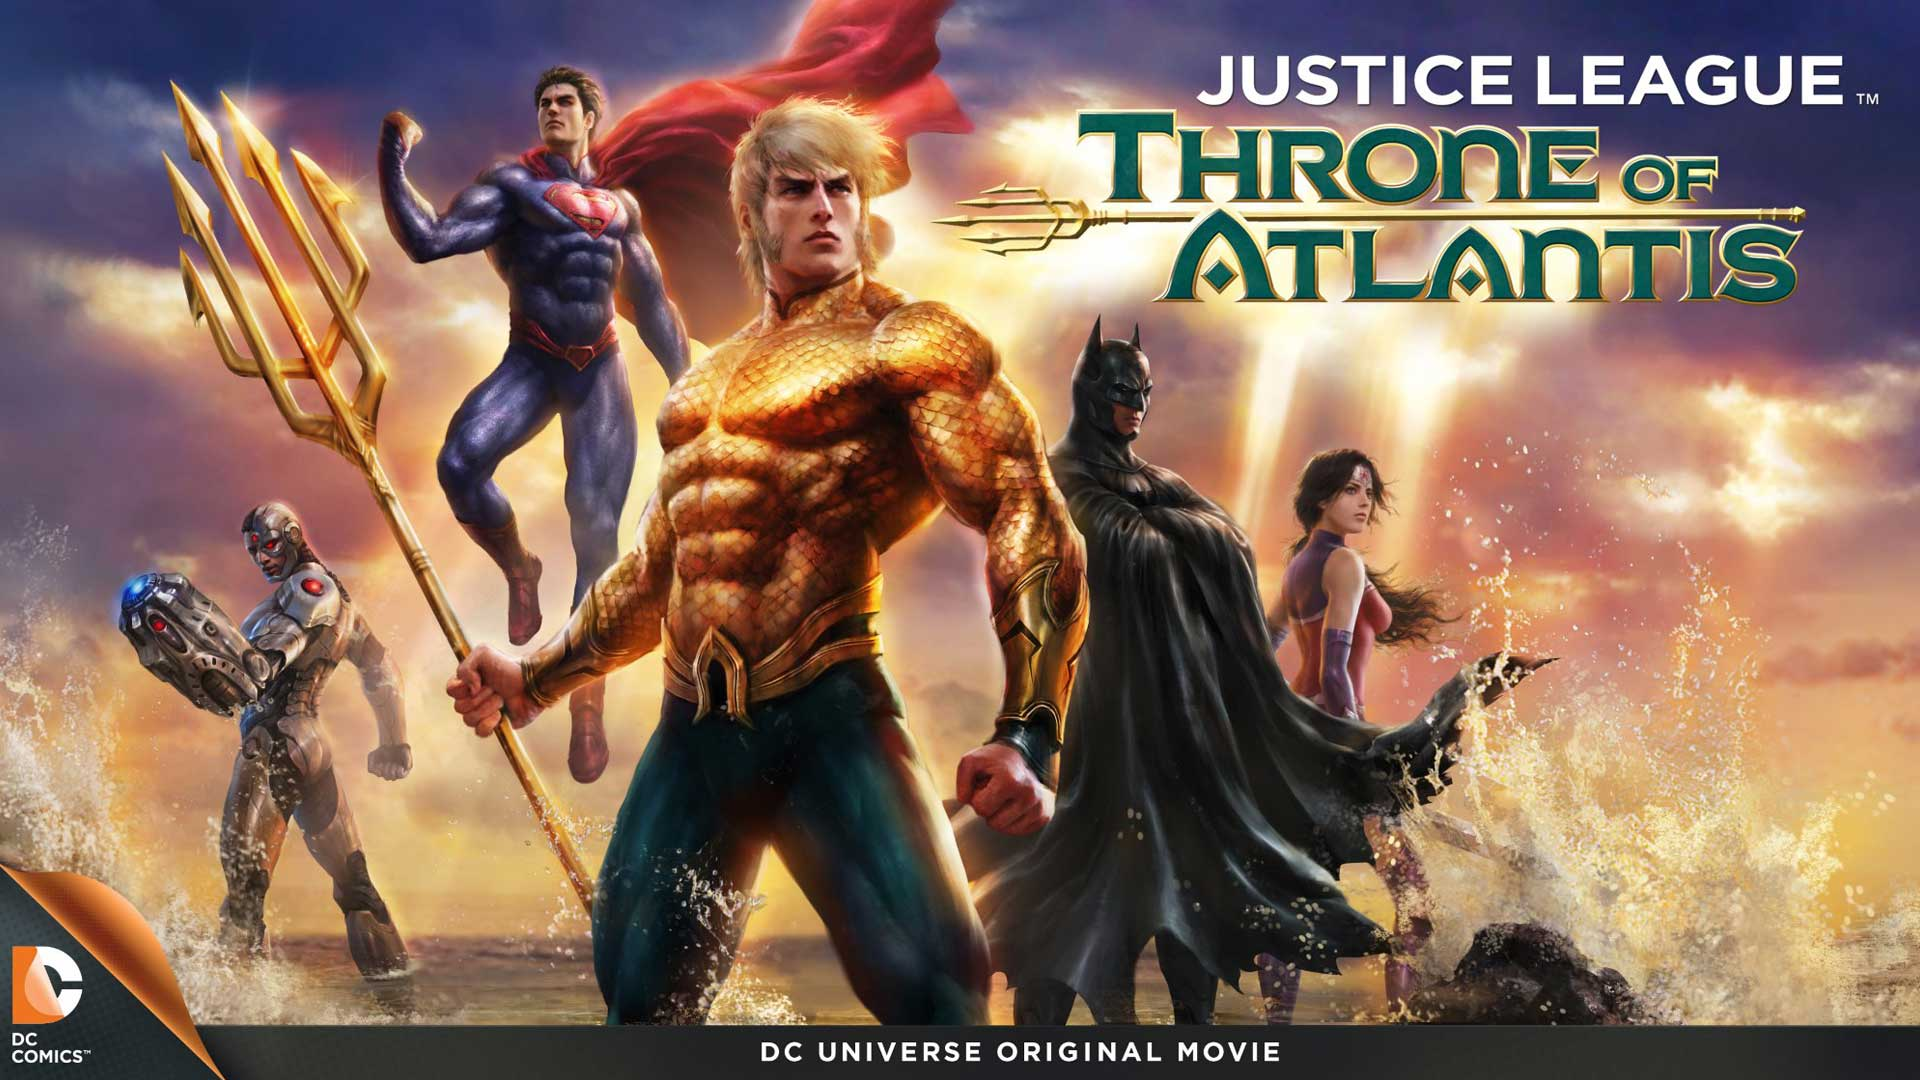 Throne Of Atlantis Showcases True Awesomeness Of Aquaman